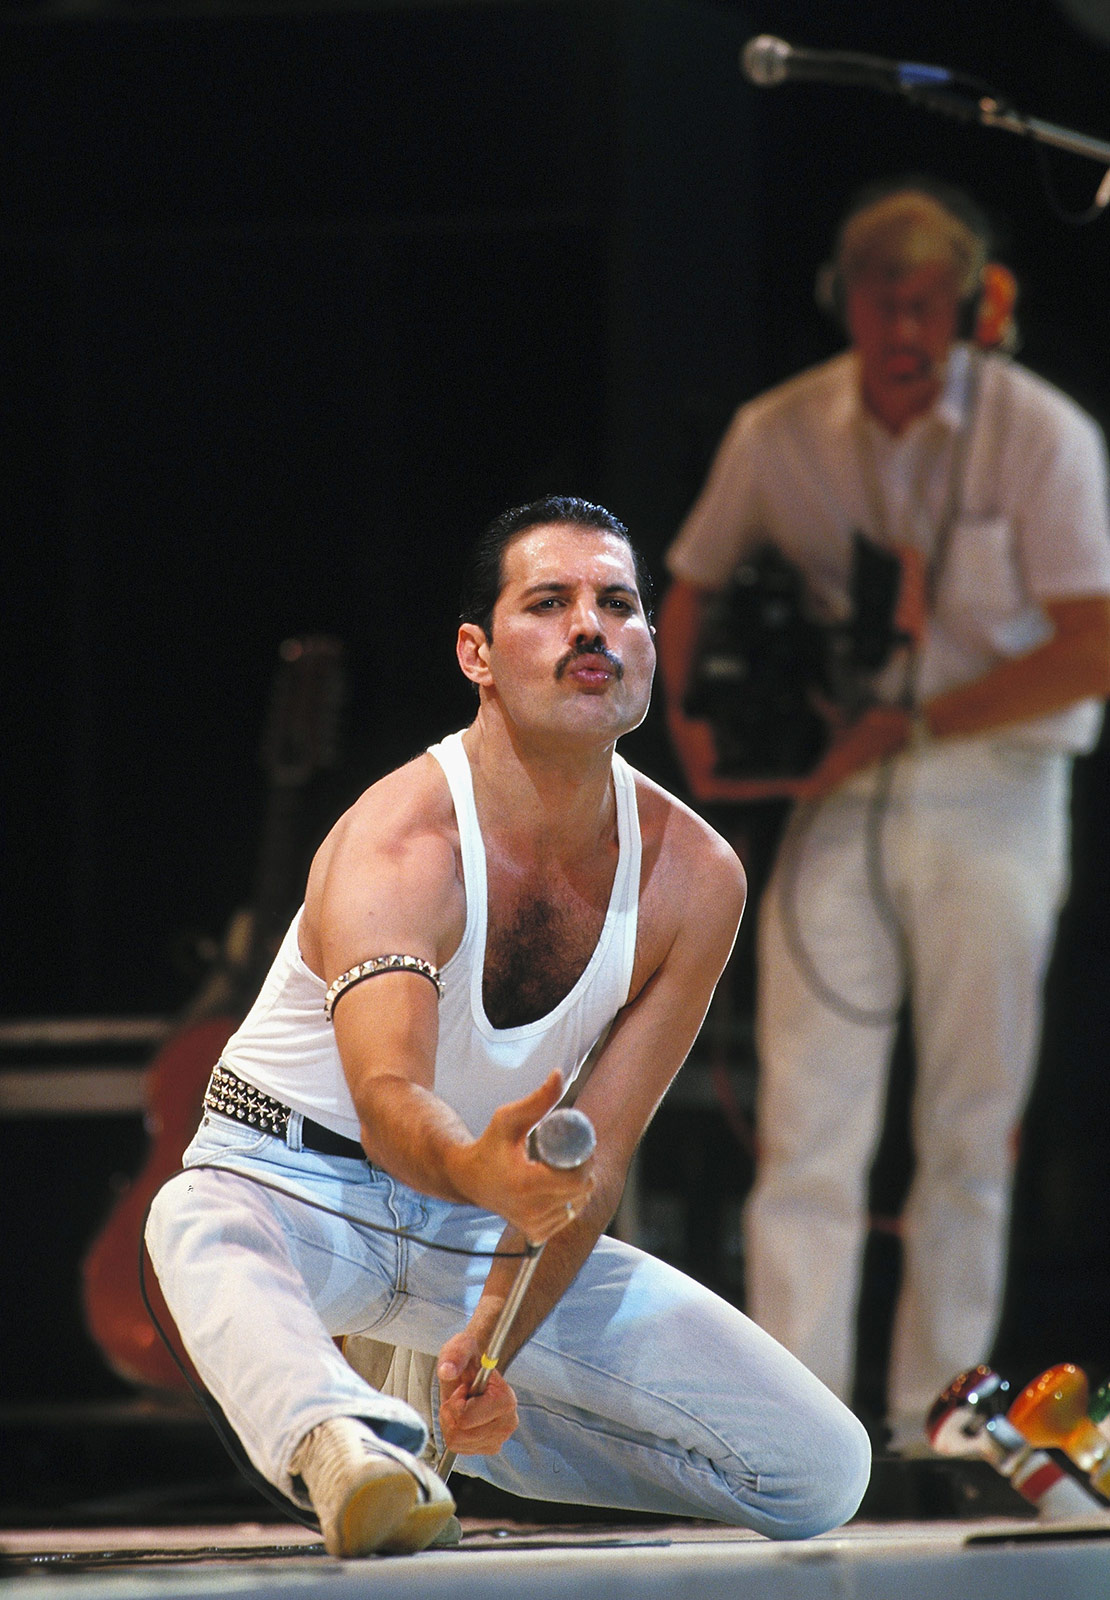 Mercury was in peak form at the show. (Georges De Keerle/Getty Images)